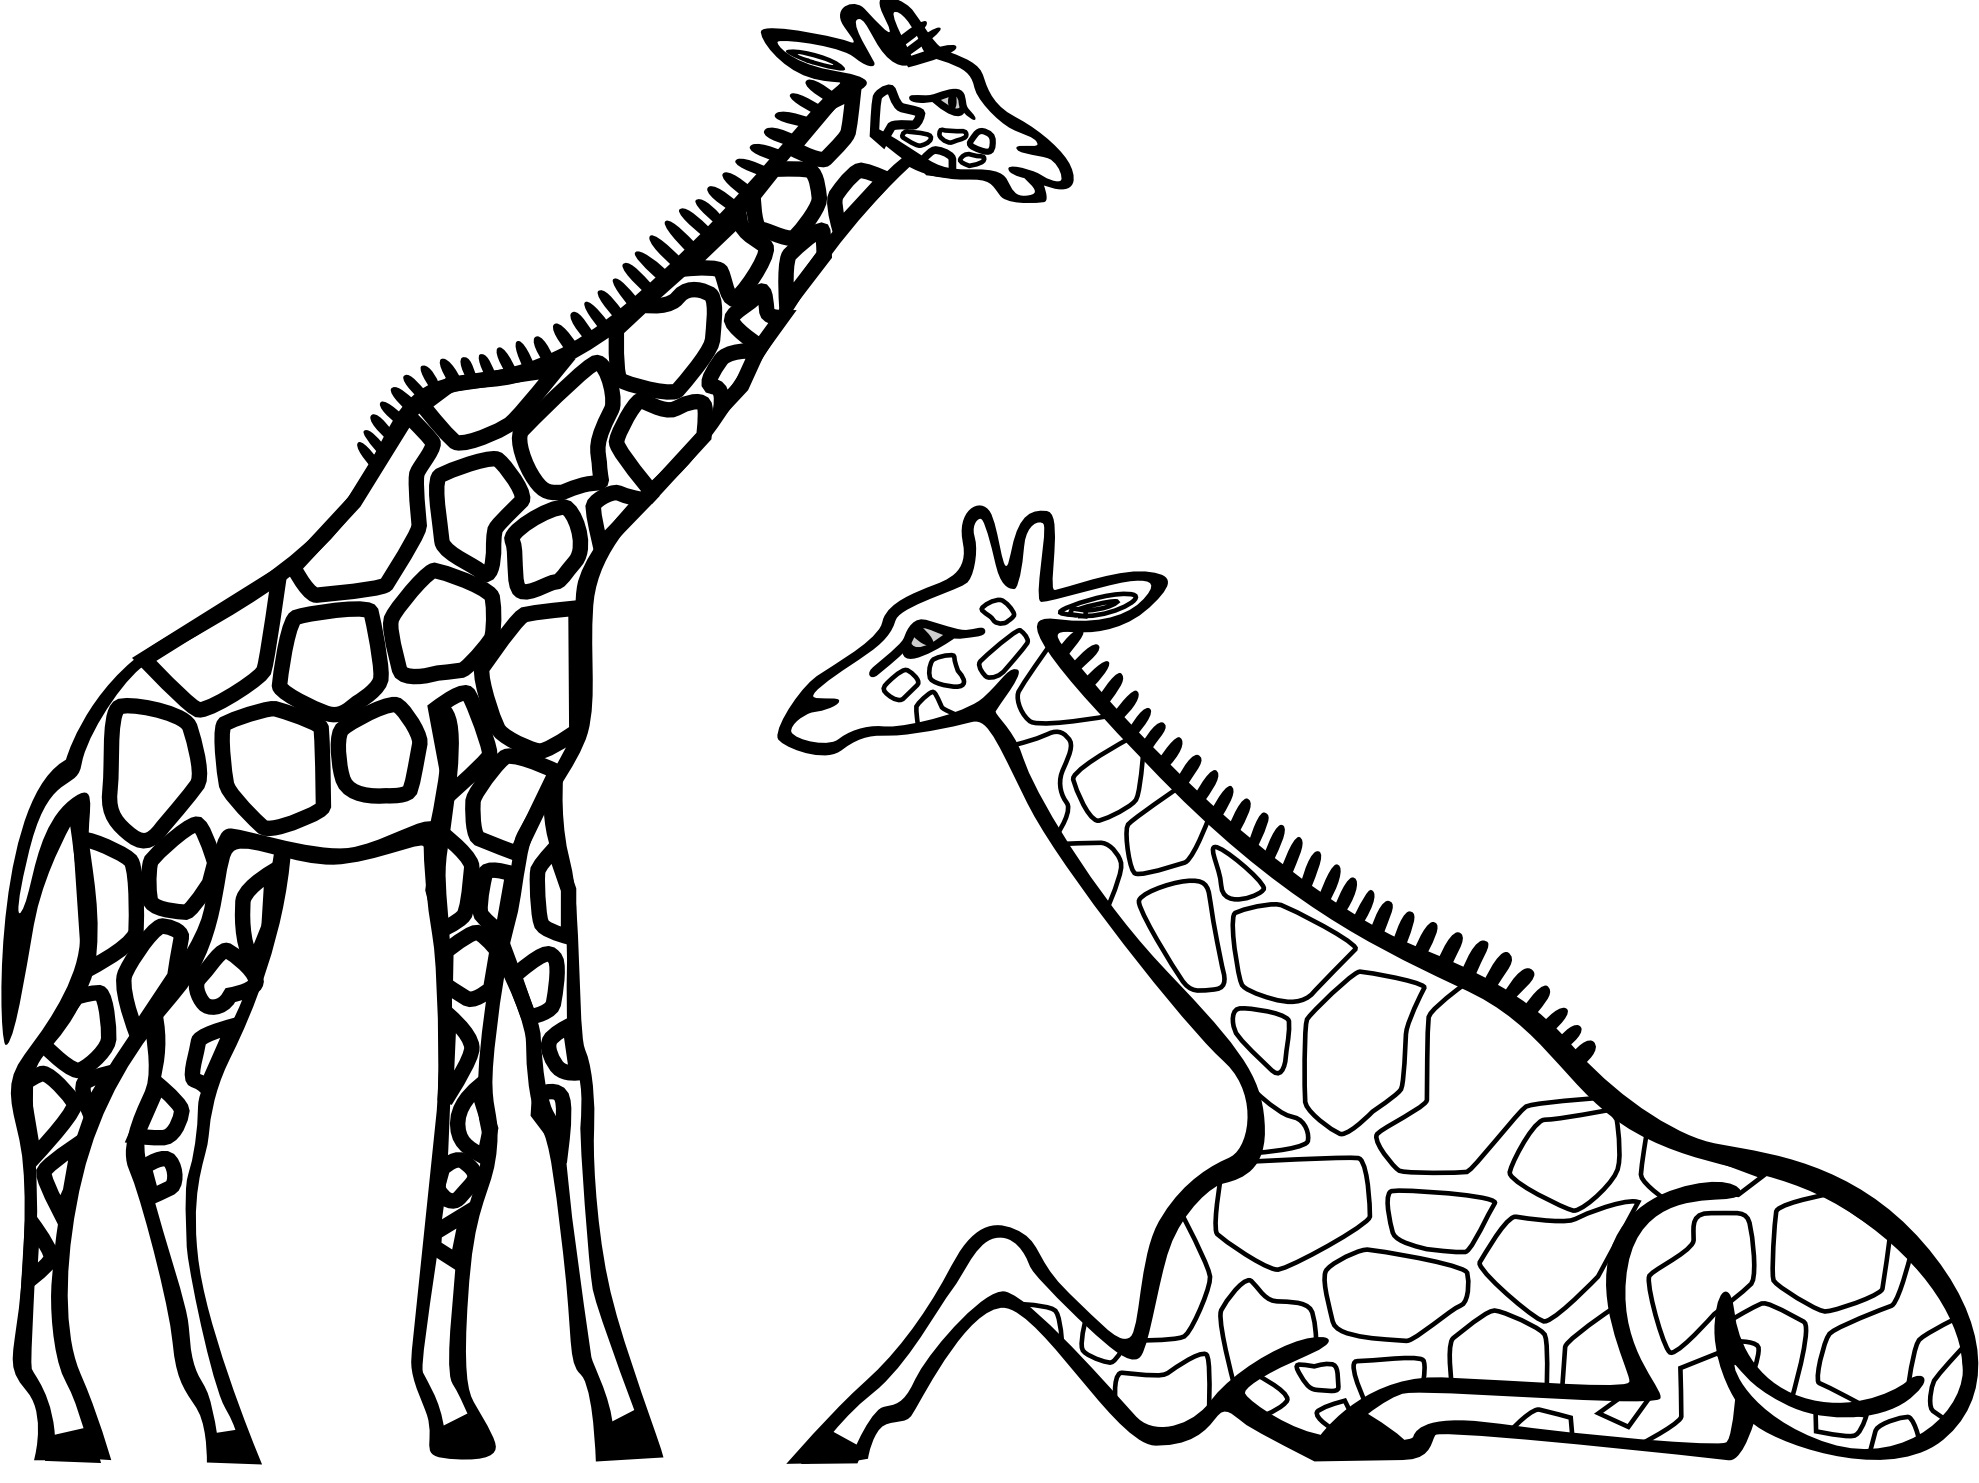 giraffe coloring pages to print - Giraffes Coloring Pages